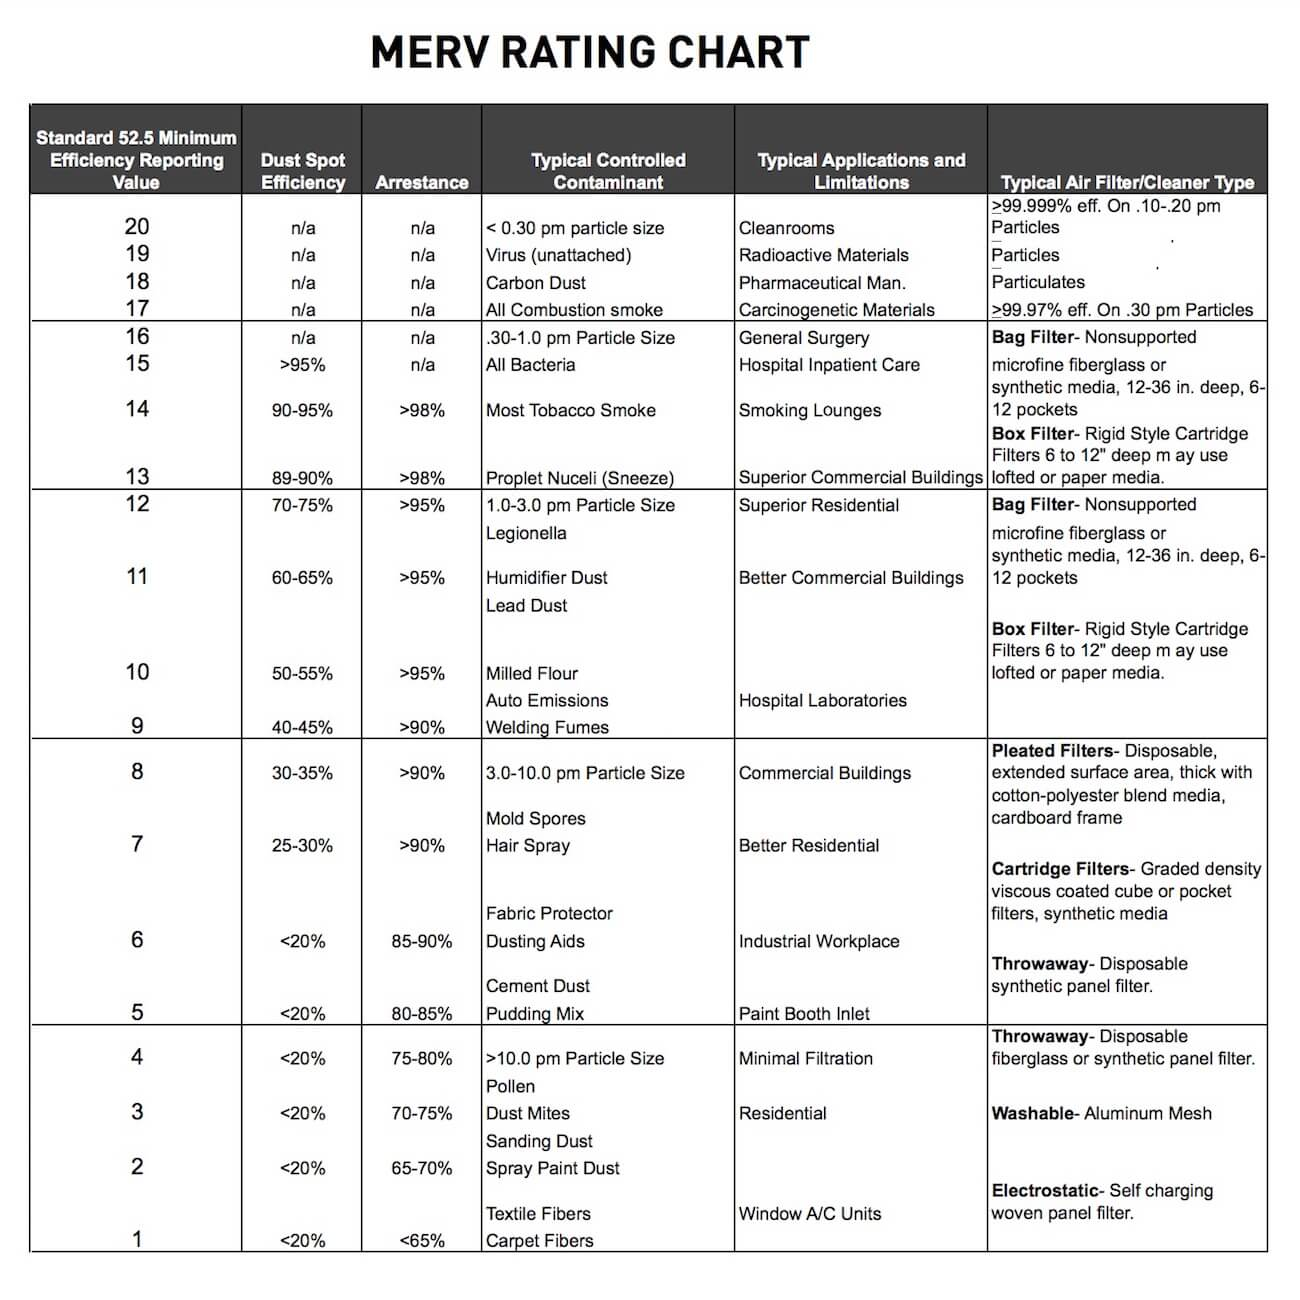 MERV Micron Rating Chart - What is a micron?